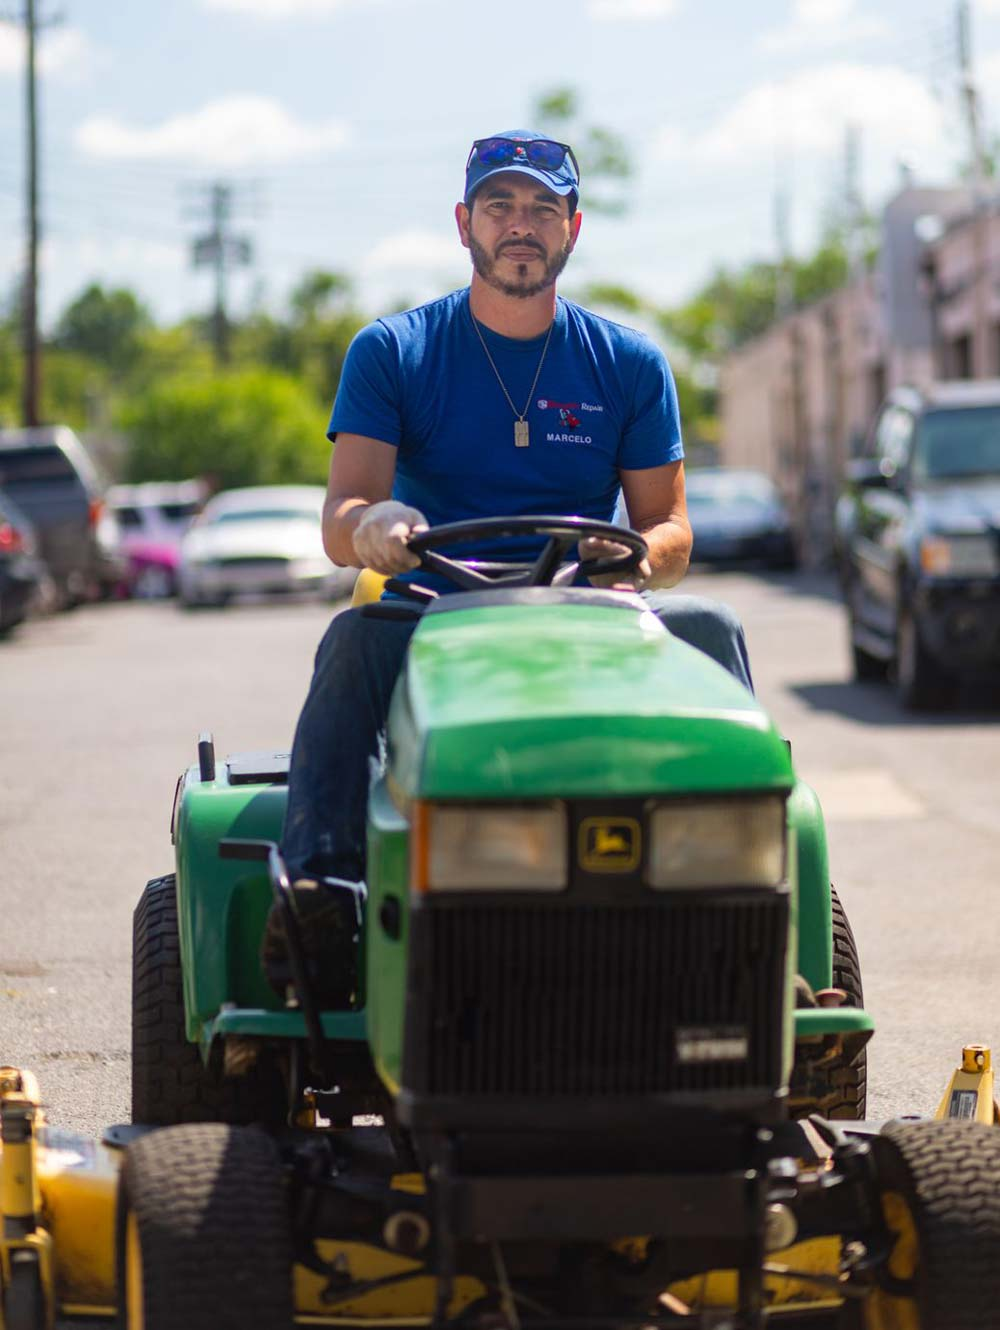 Blunard's Repair & Equipment team member riding lawn mower